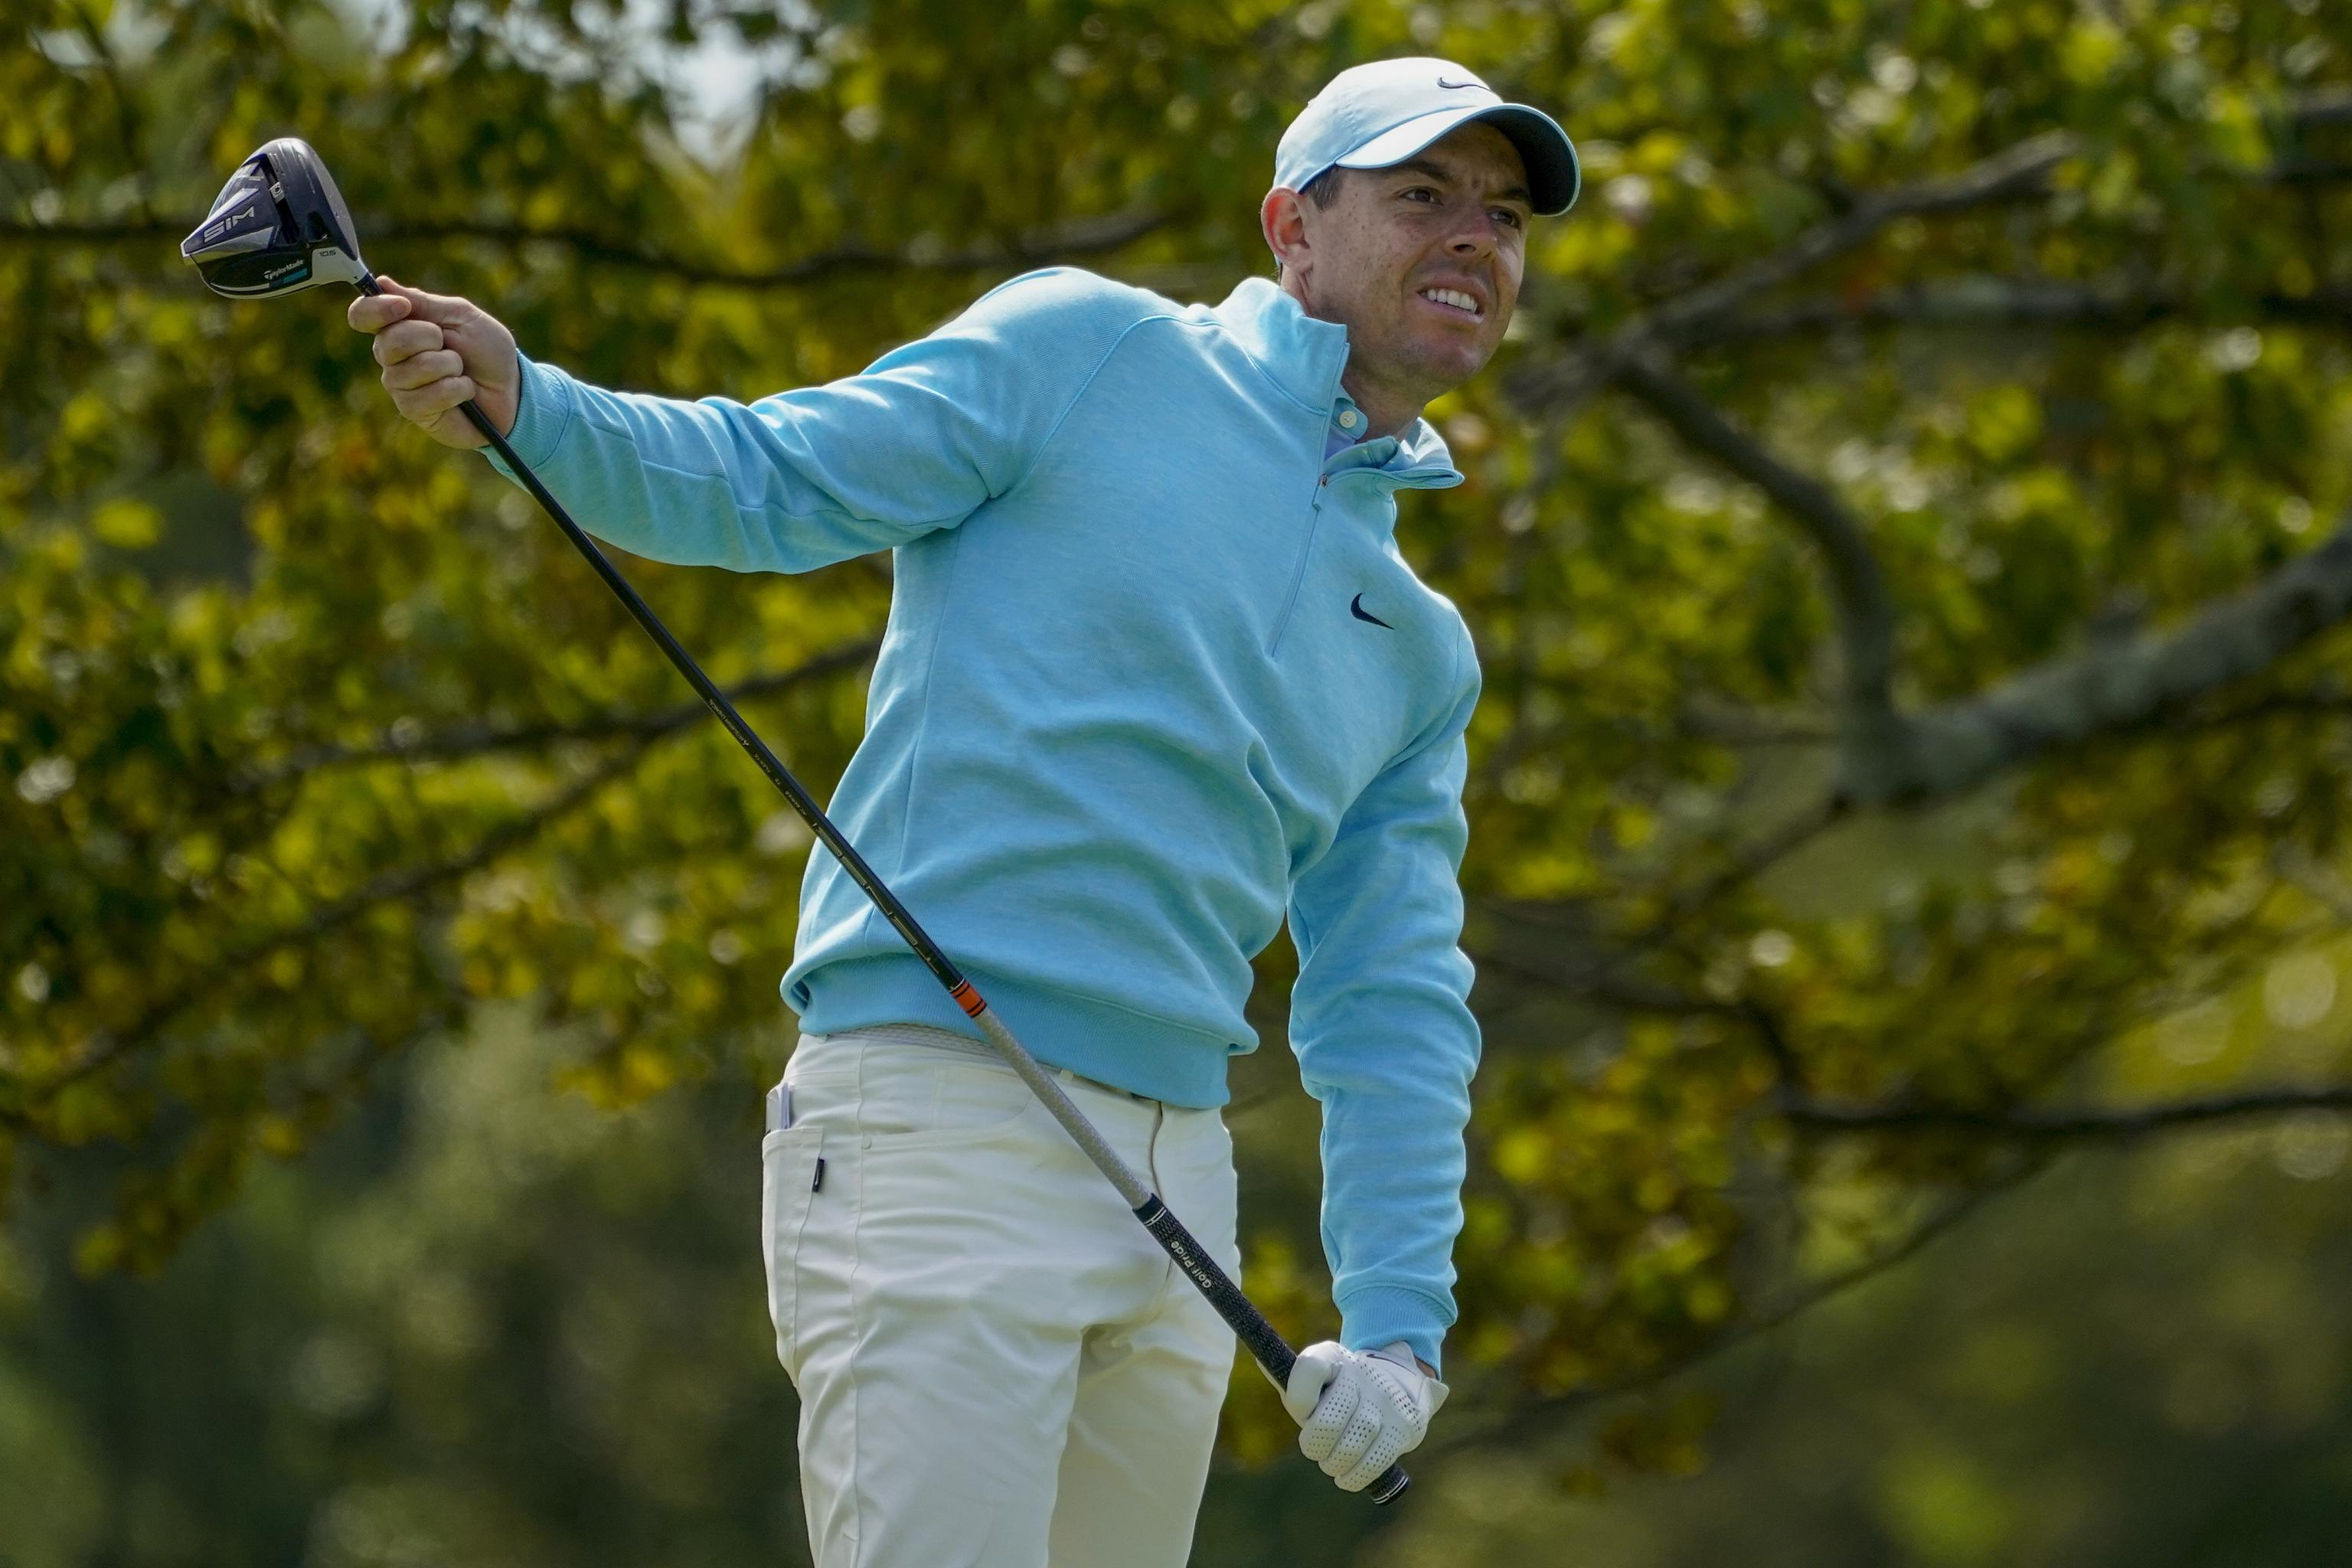 Rory Mcilroy Shoots 5 Over In Final Round To Close Inconsistent 2020 Us Open Bleacher Report Latest News Videos And Highlights